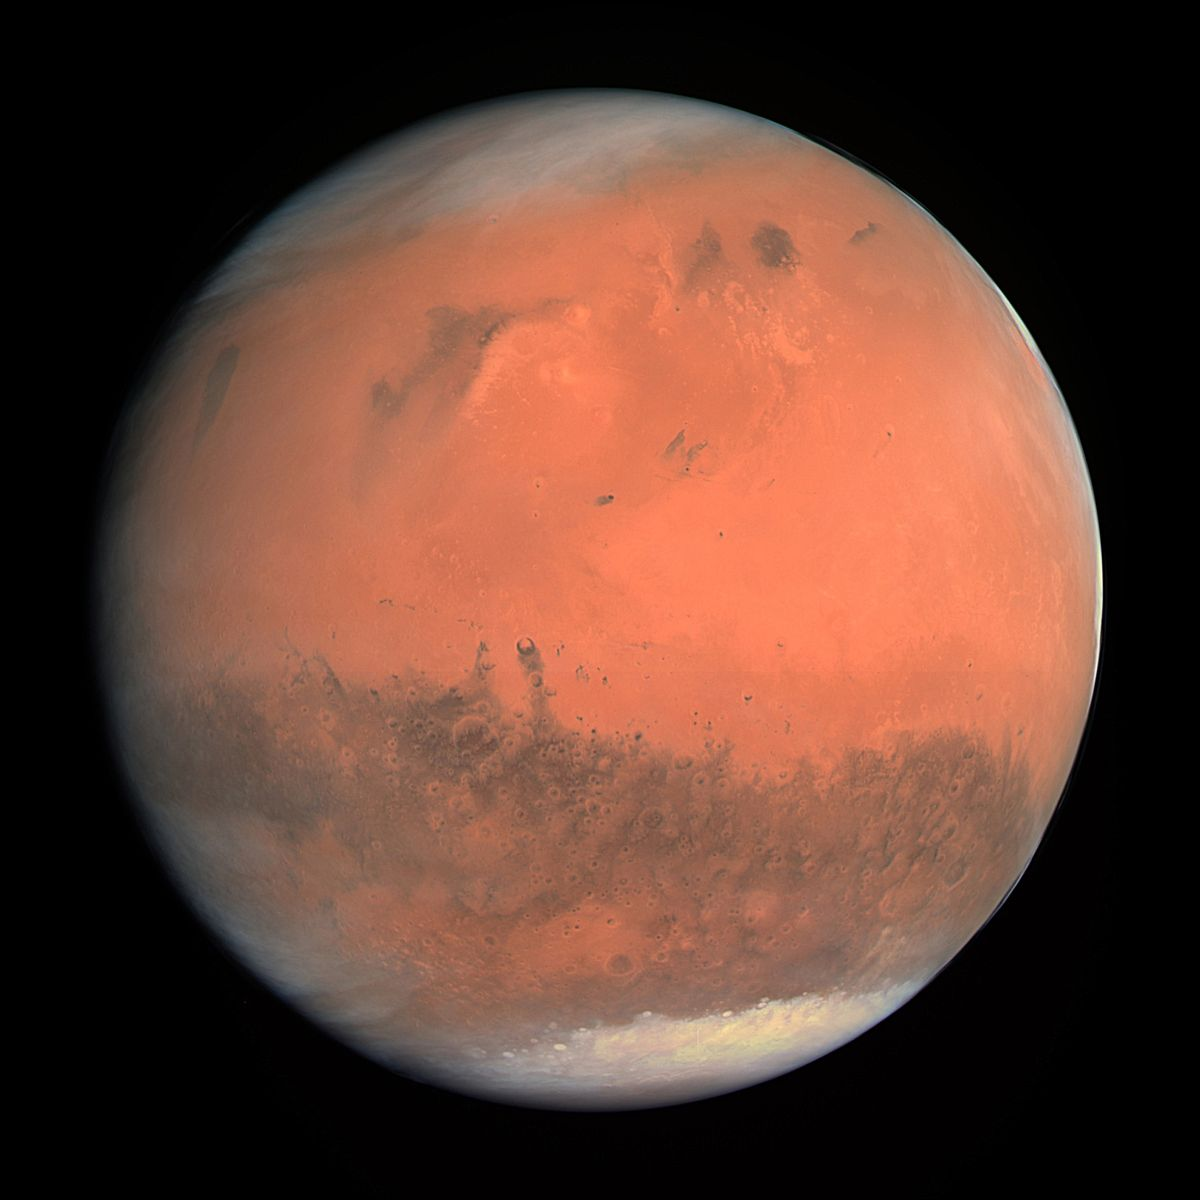 Mars once had rings and a much bigger moon, new evidence suggests